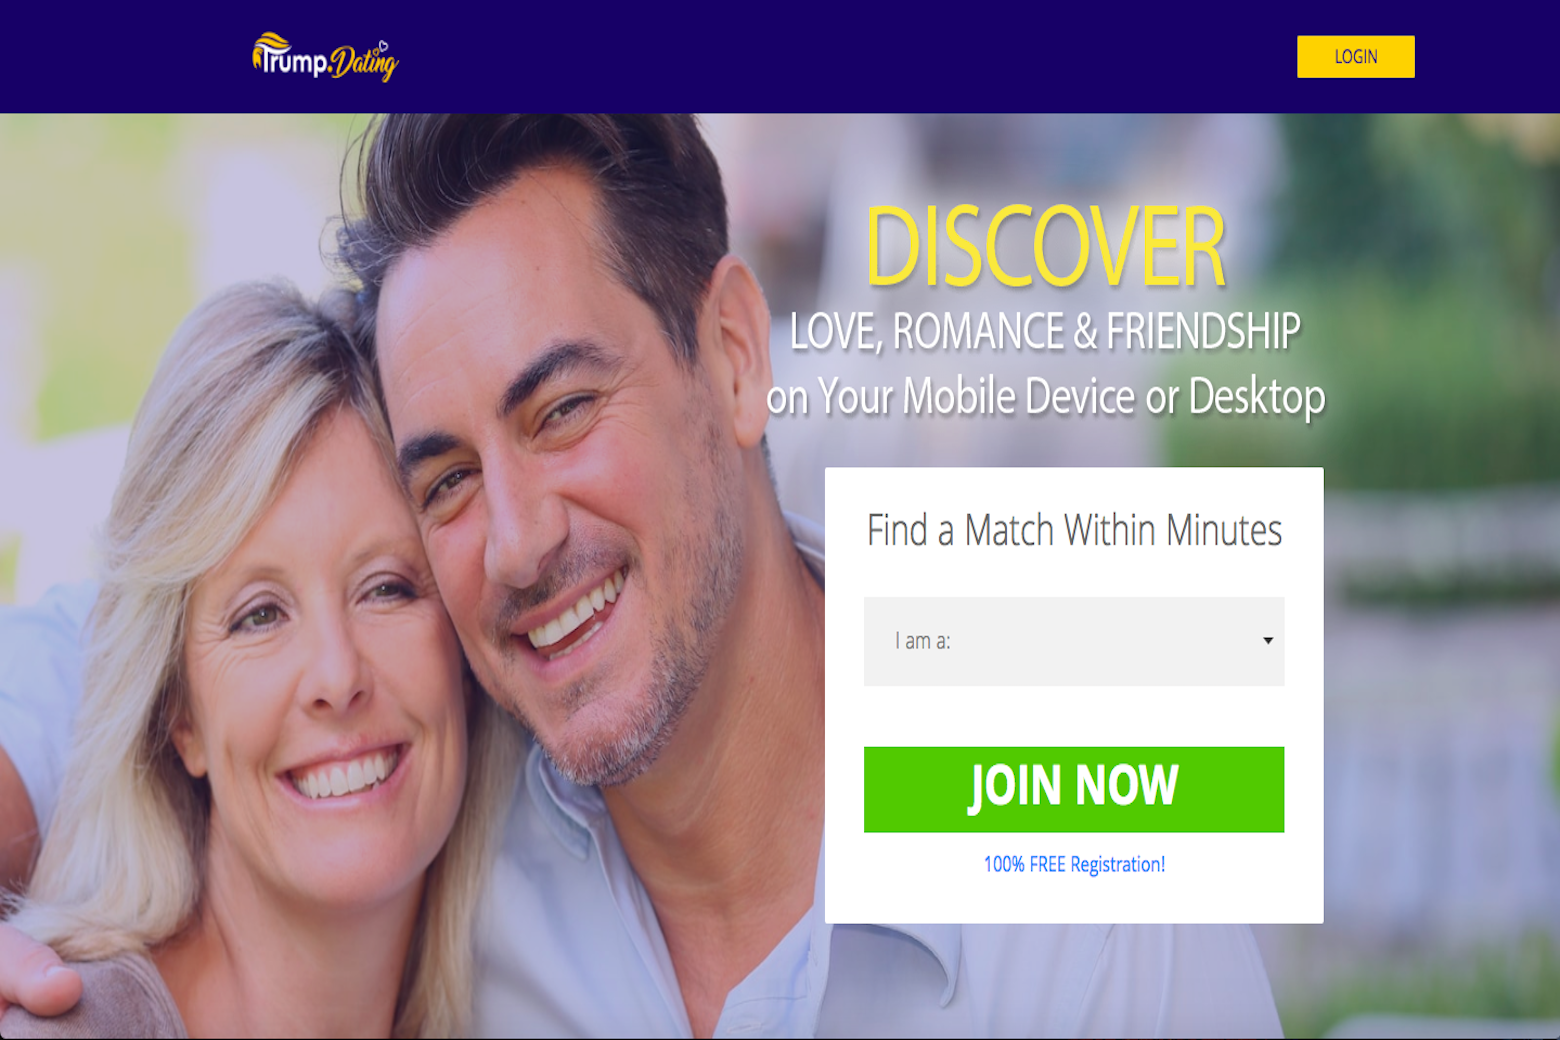 A white couple seen embracing on the Trump.dating homepage.